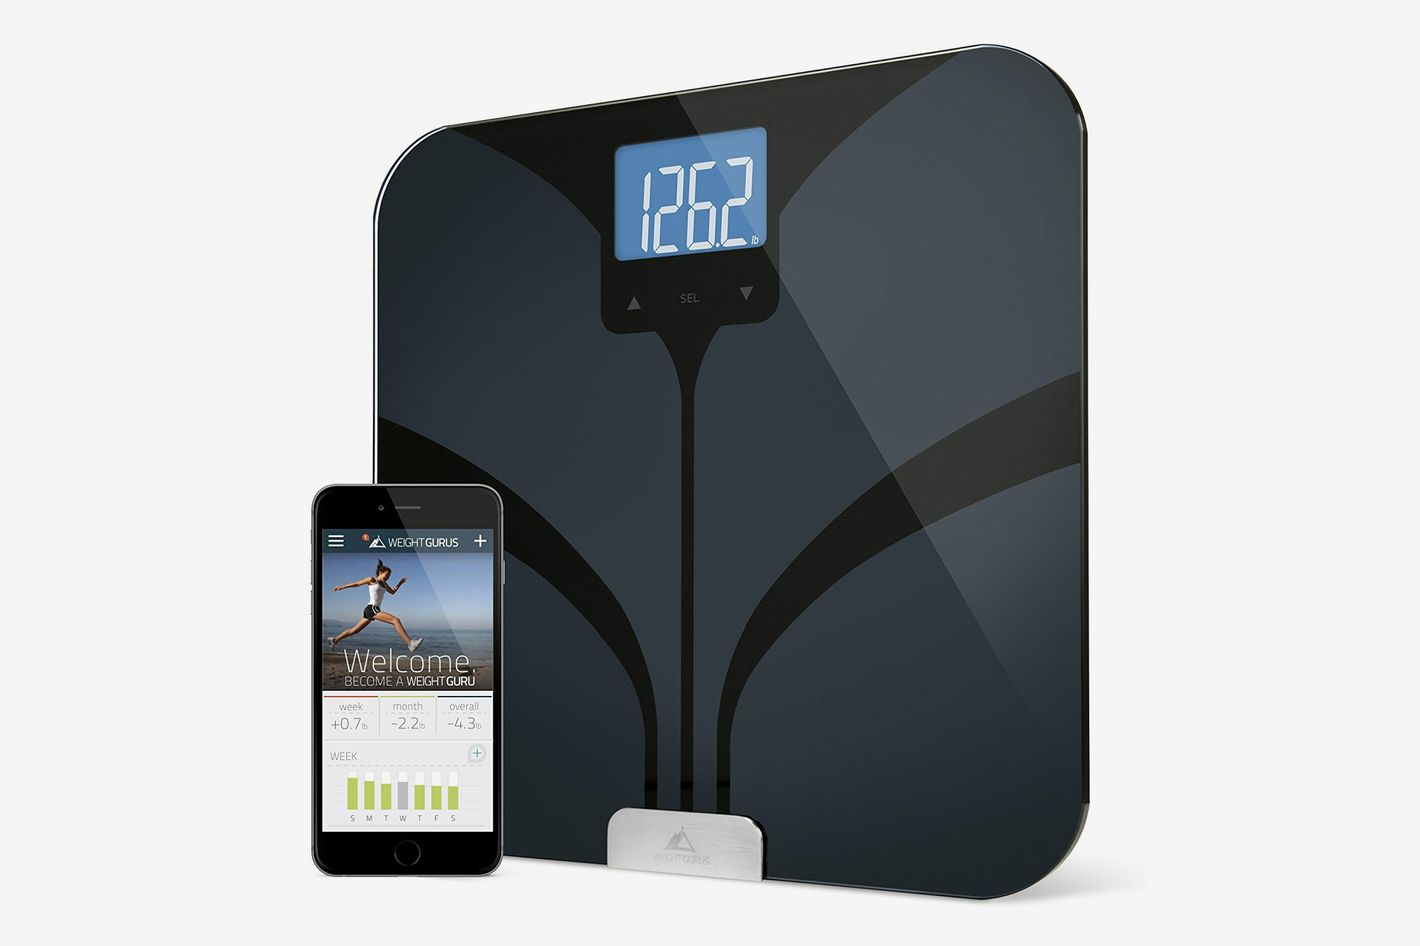 Best Bluetooth Bathroom Scale Smart Body Fat By Weight Gurus